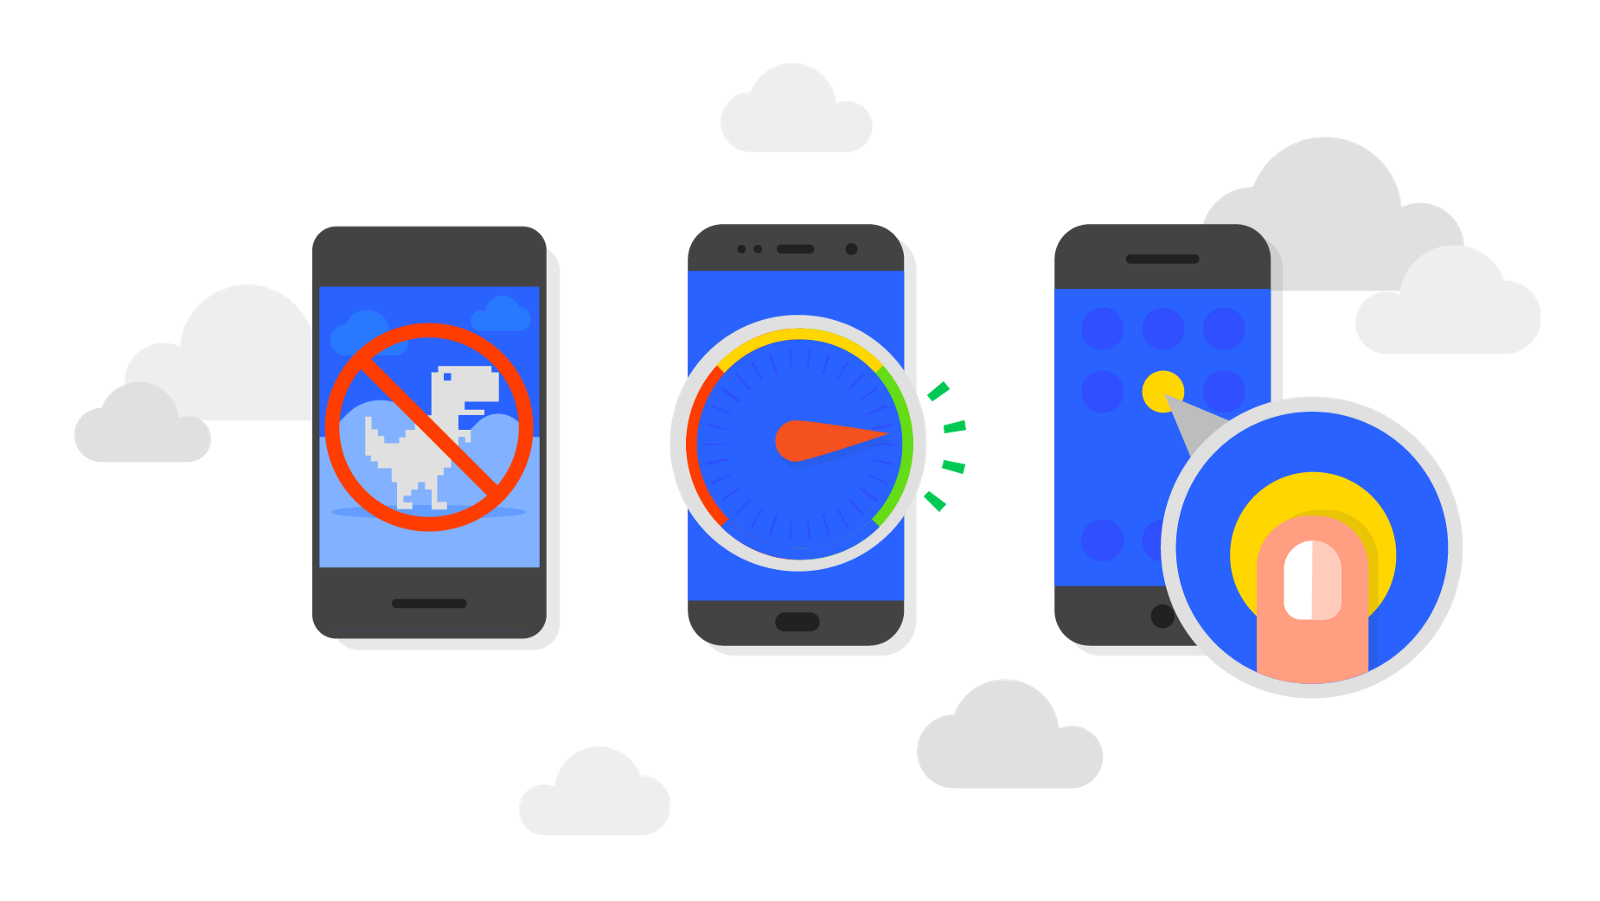 Progressive web apps vs Native apps: Which is ideal for me?